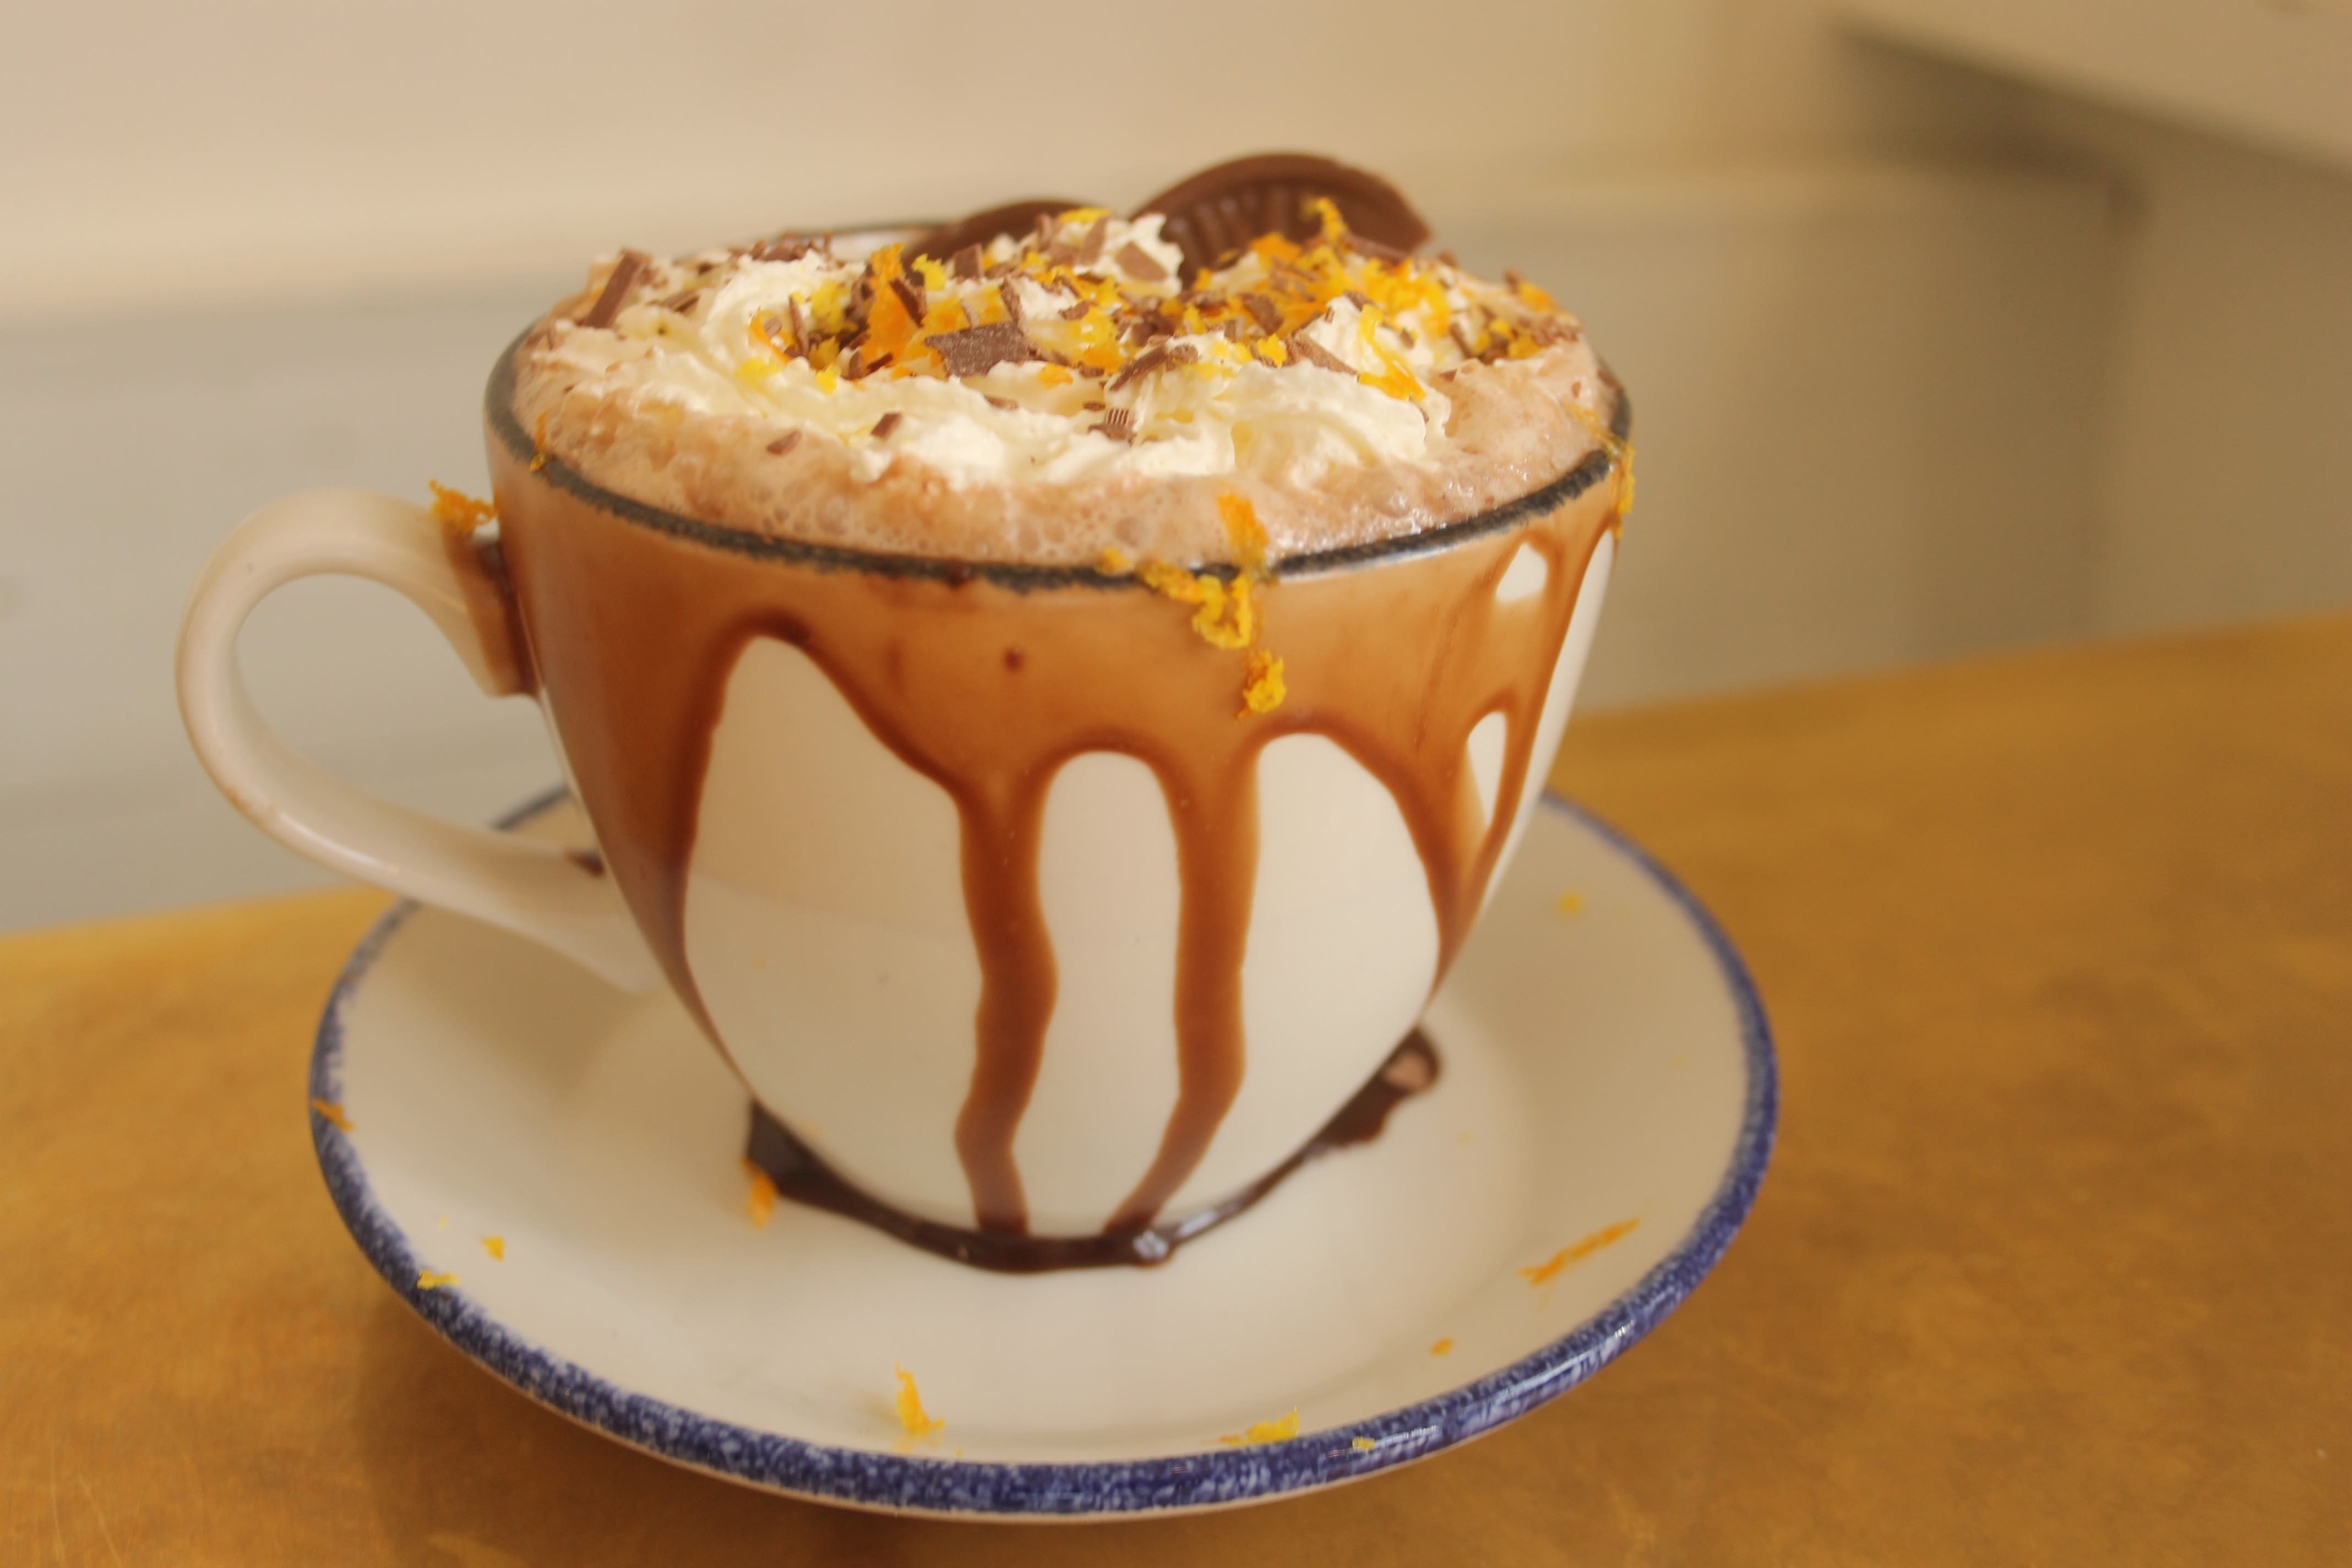 Hot Chocolate in London, Top 10: Festive Hot Chocolates in London, best Hot Chocolates in London